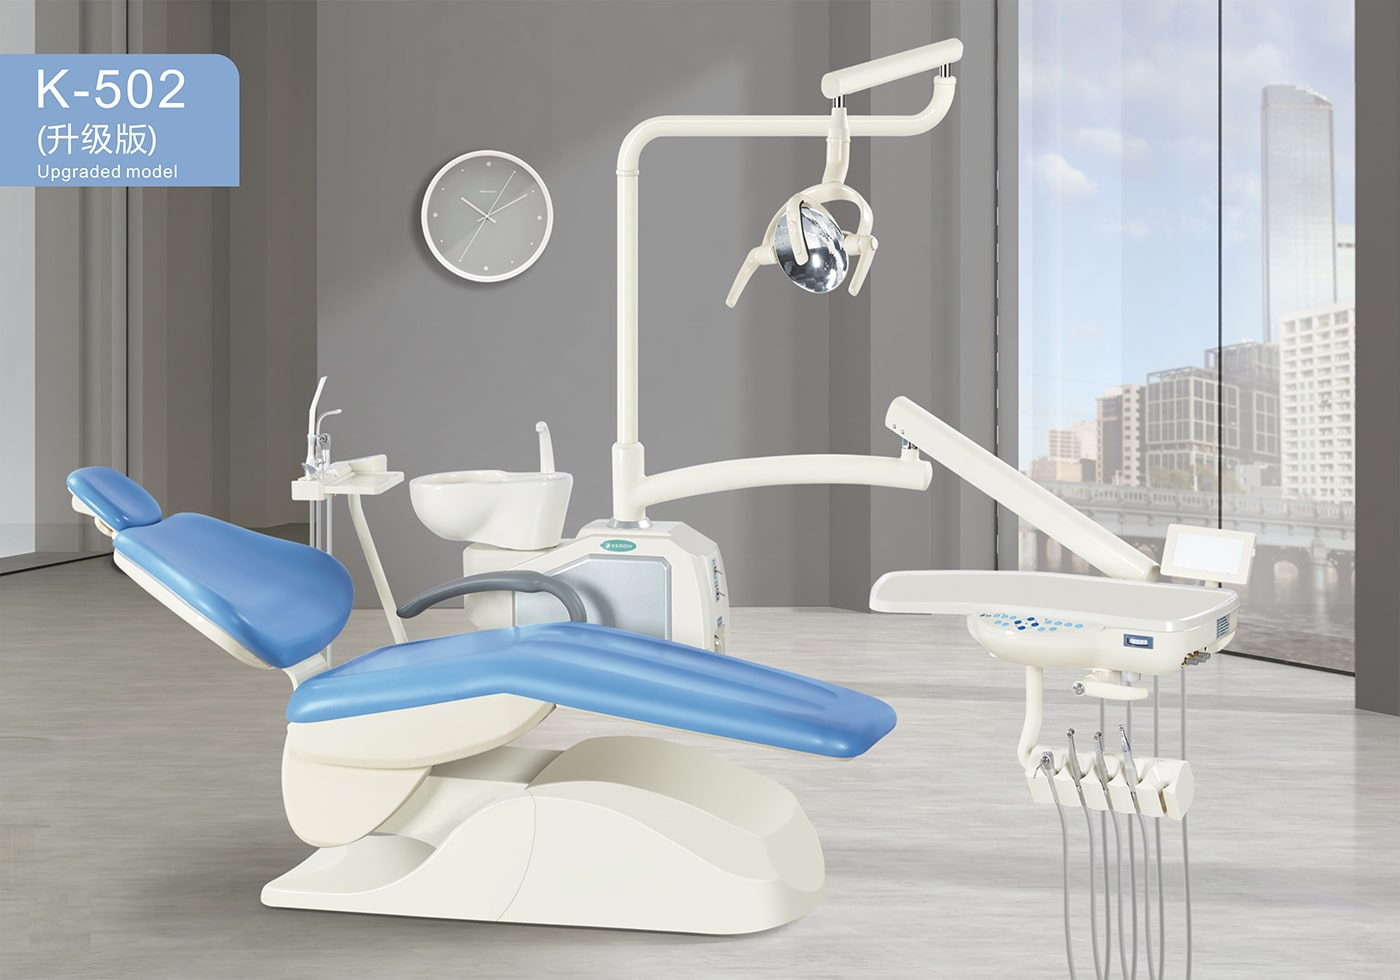 Dental Chair K-502A Upgraded Model